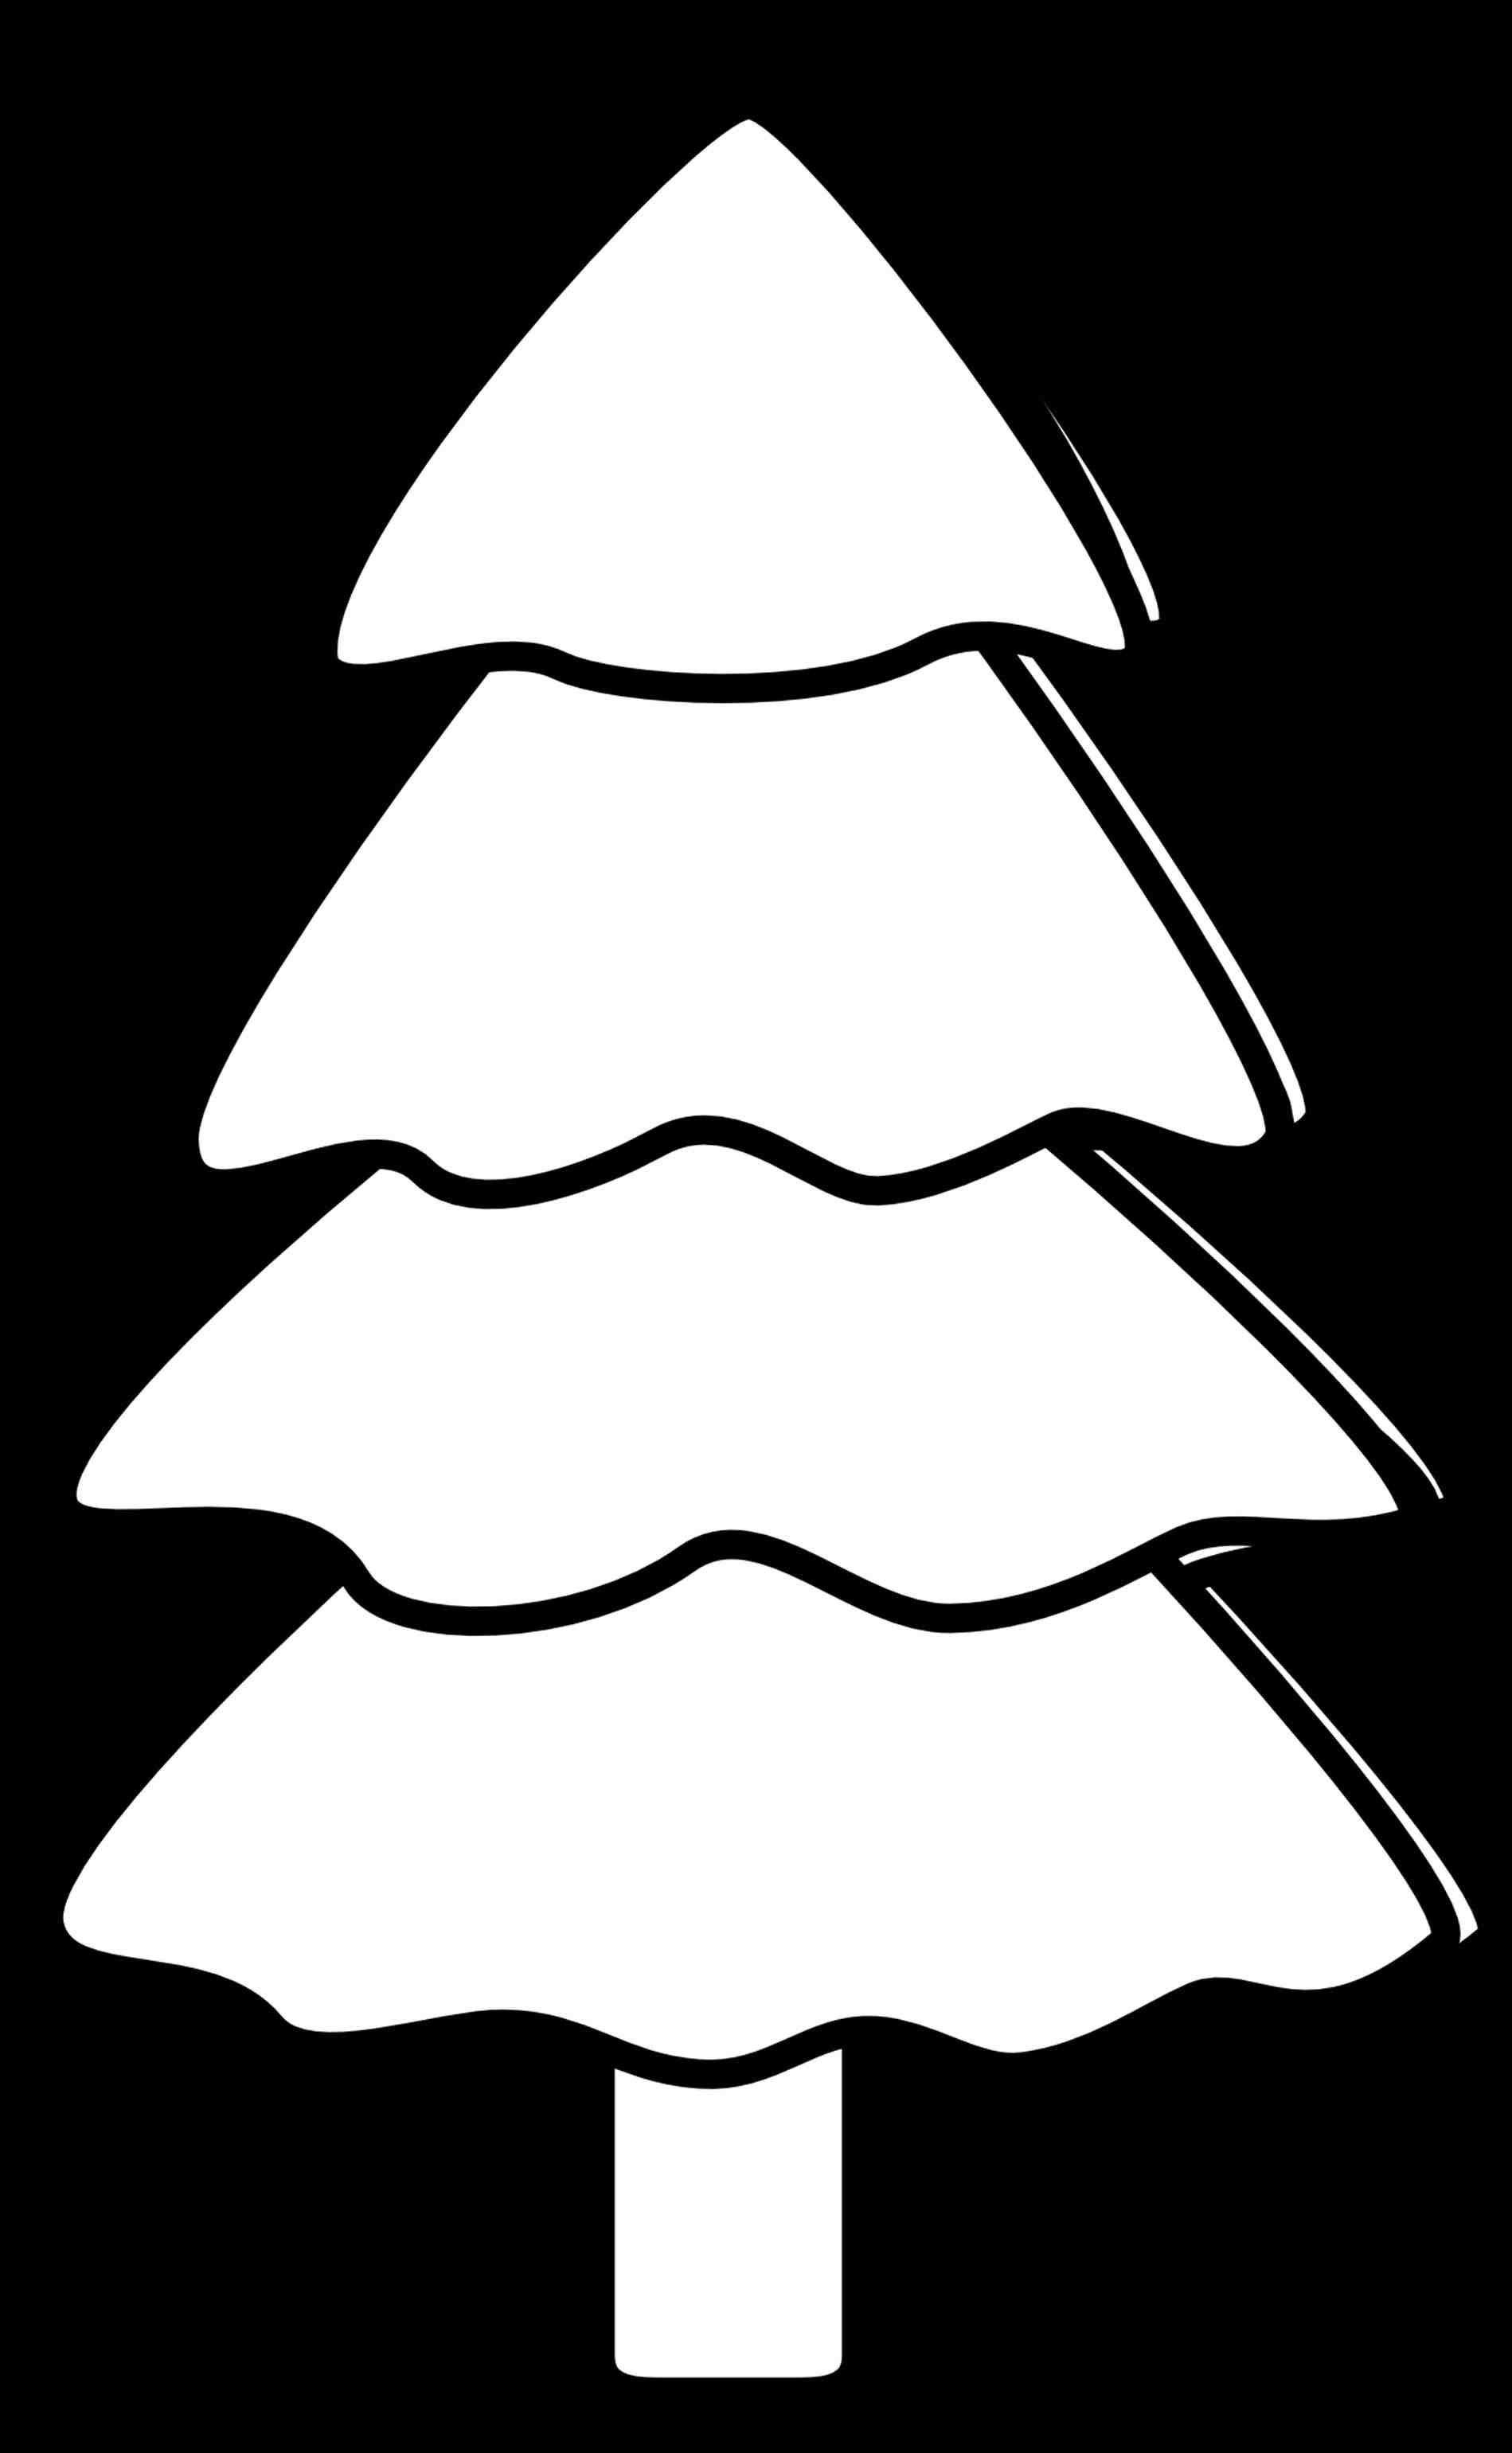 1899x3081 Christmas Star Clip Art Black And White Cheminee.website